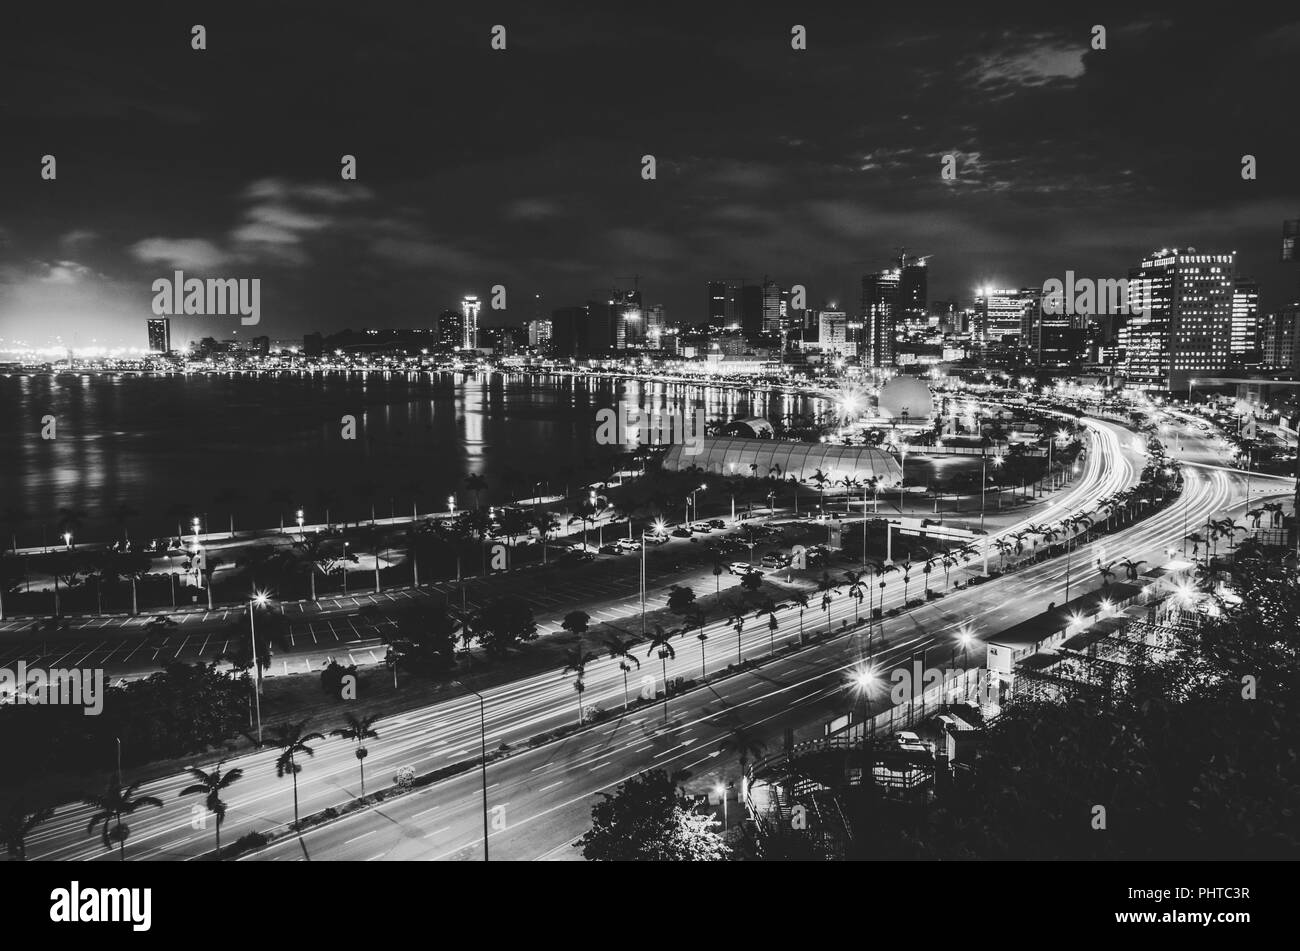 Skyline of capital city Luanda and its seaside during the night, Angola, Africa. - Stock Image